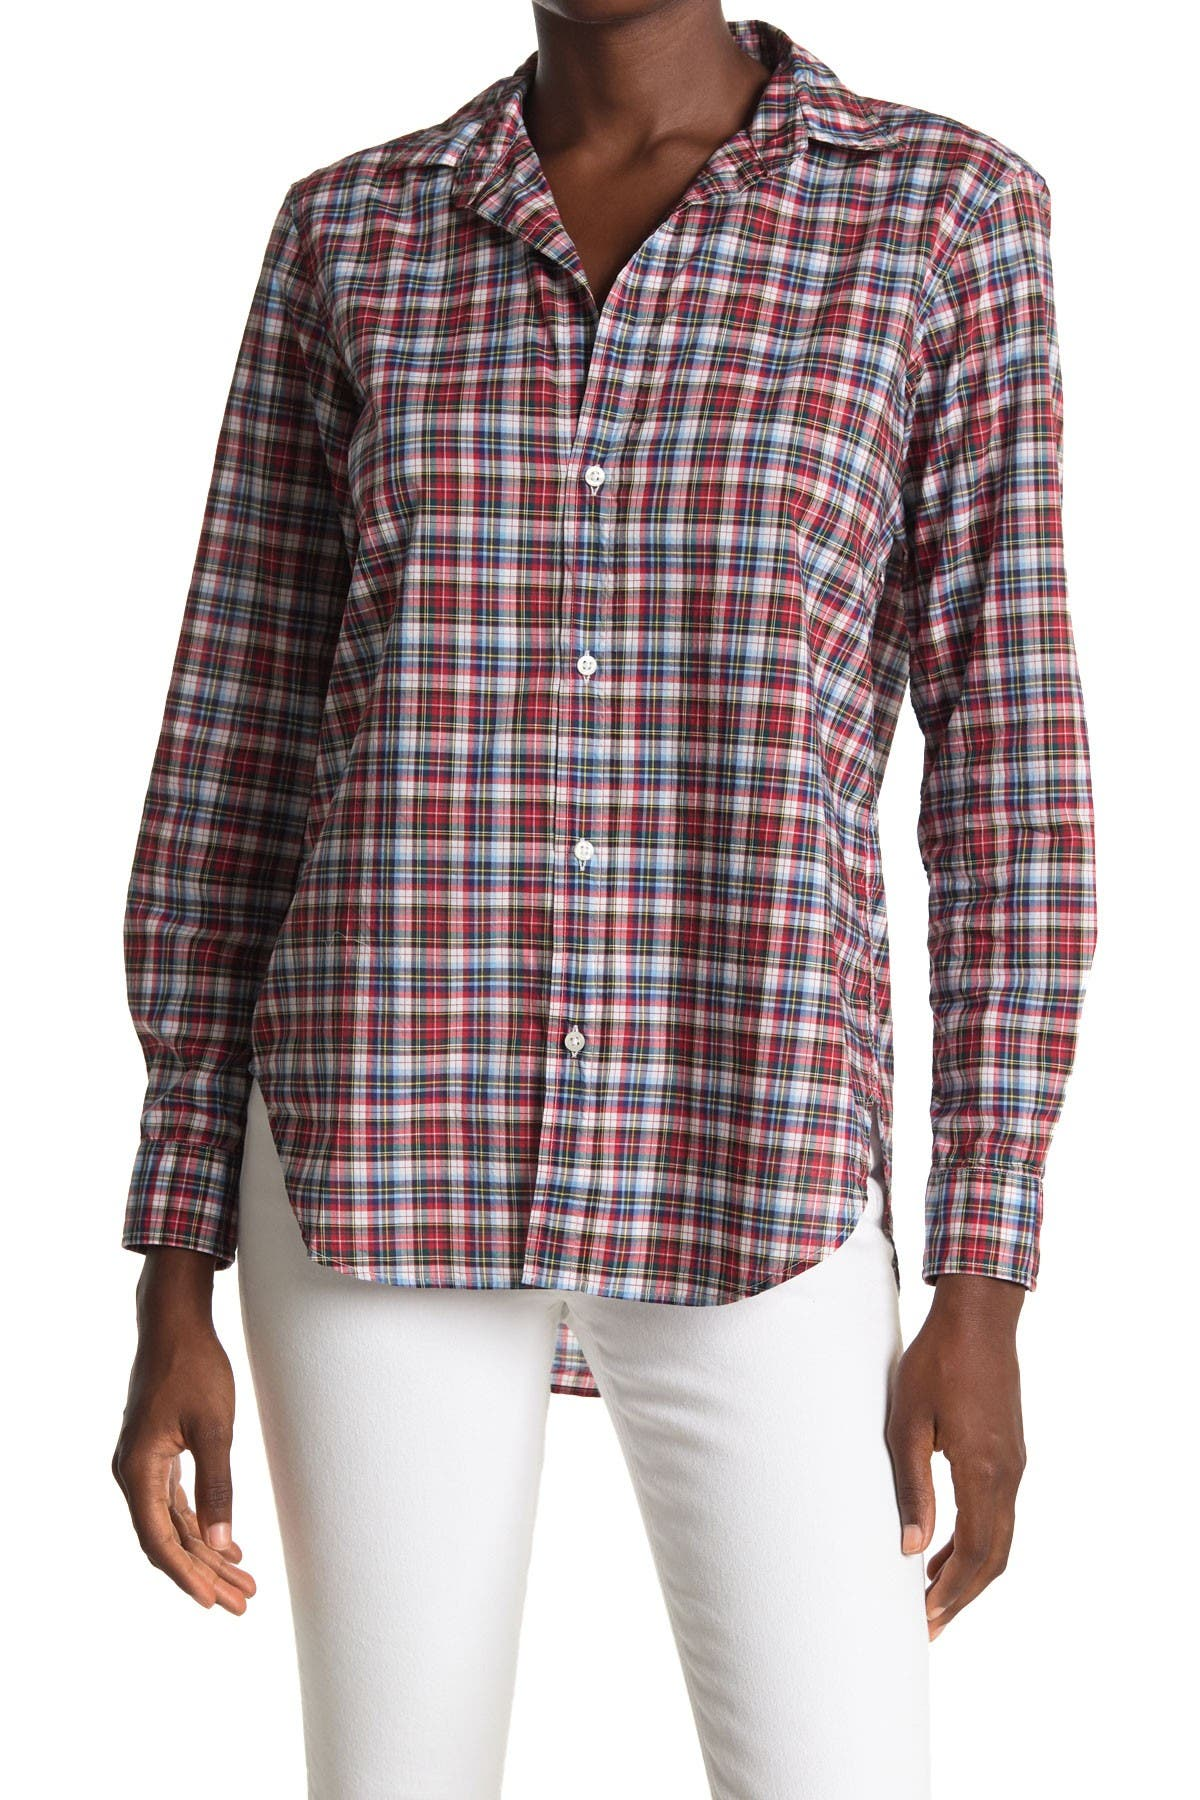 Image of FRANK & EILEEN Frank Plaid Woven Collared Shirt